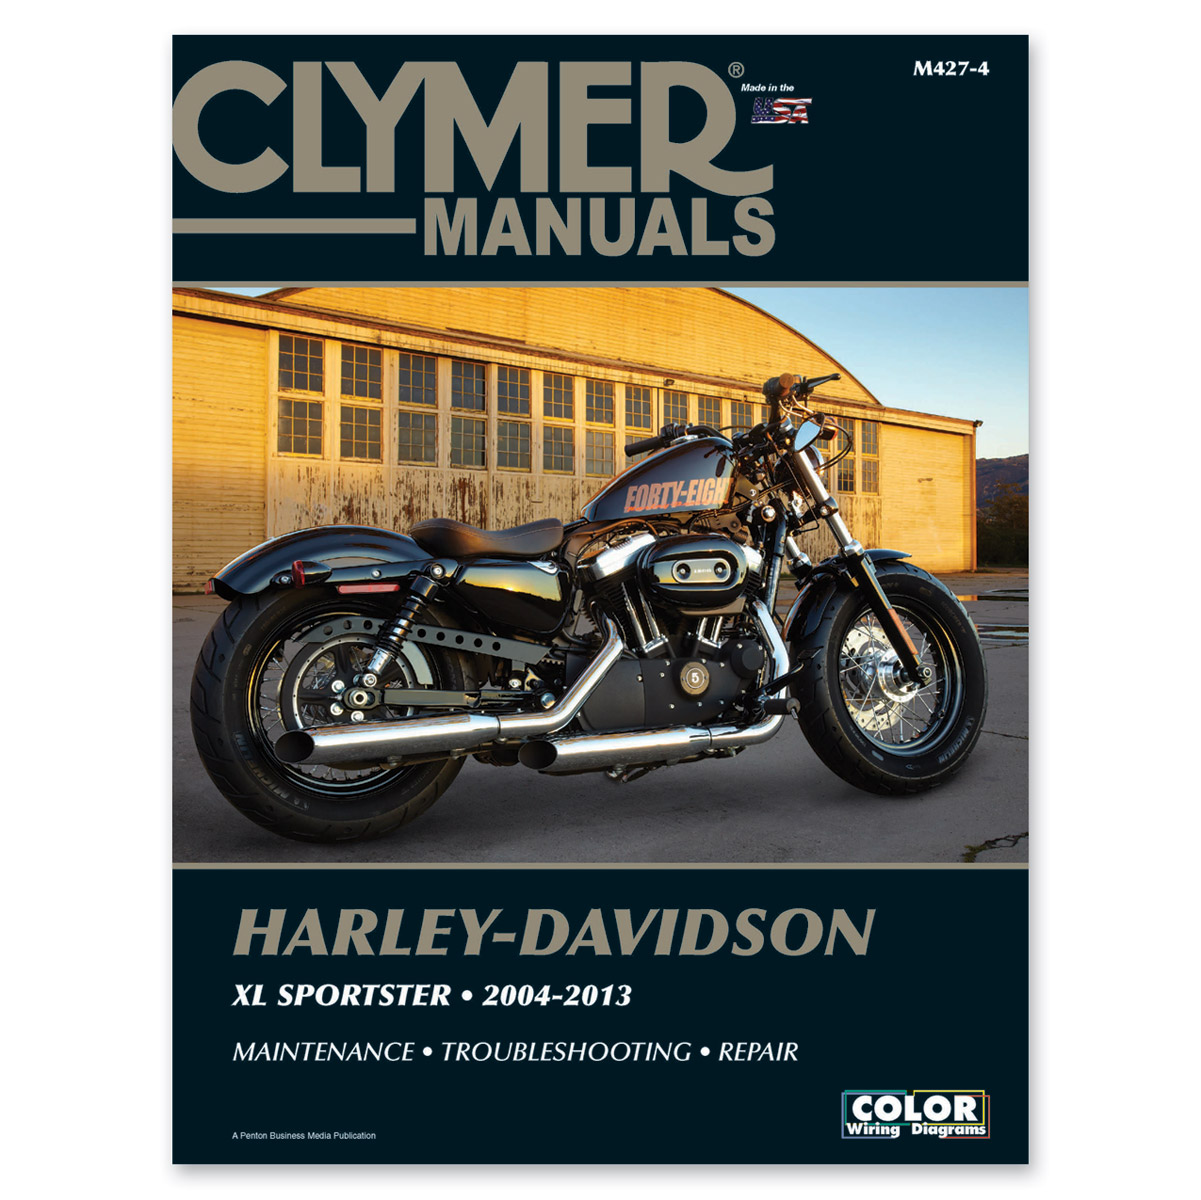 2012 street glide service manual download